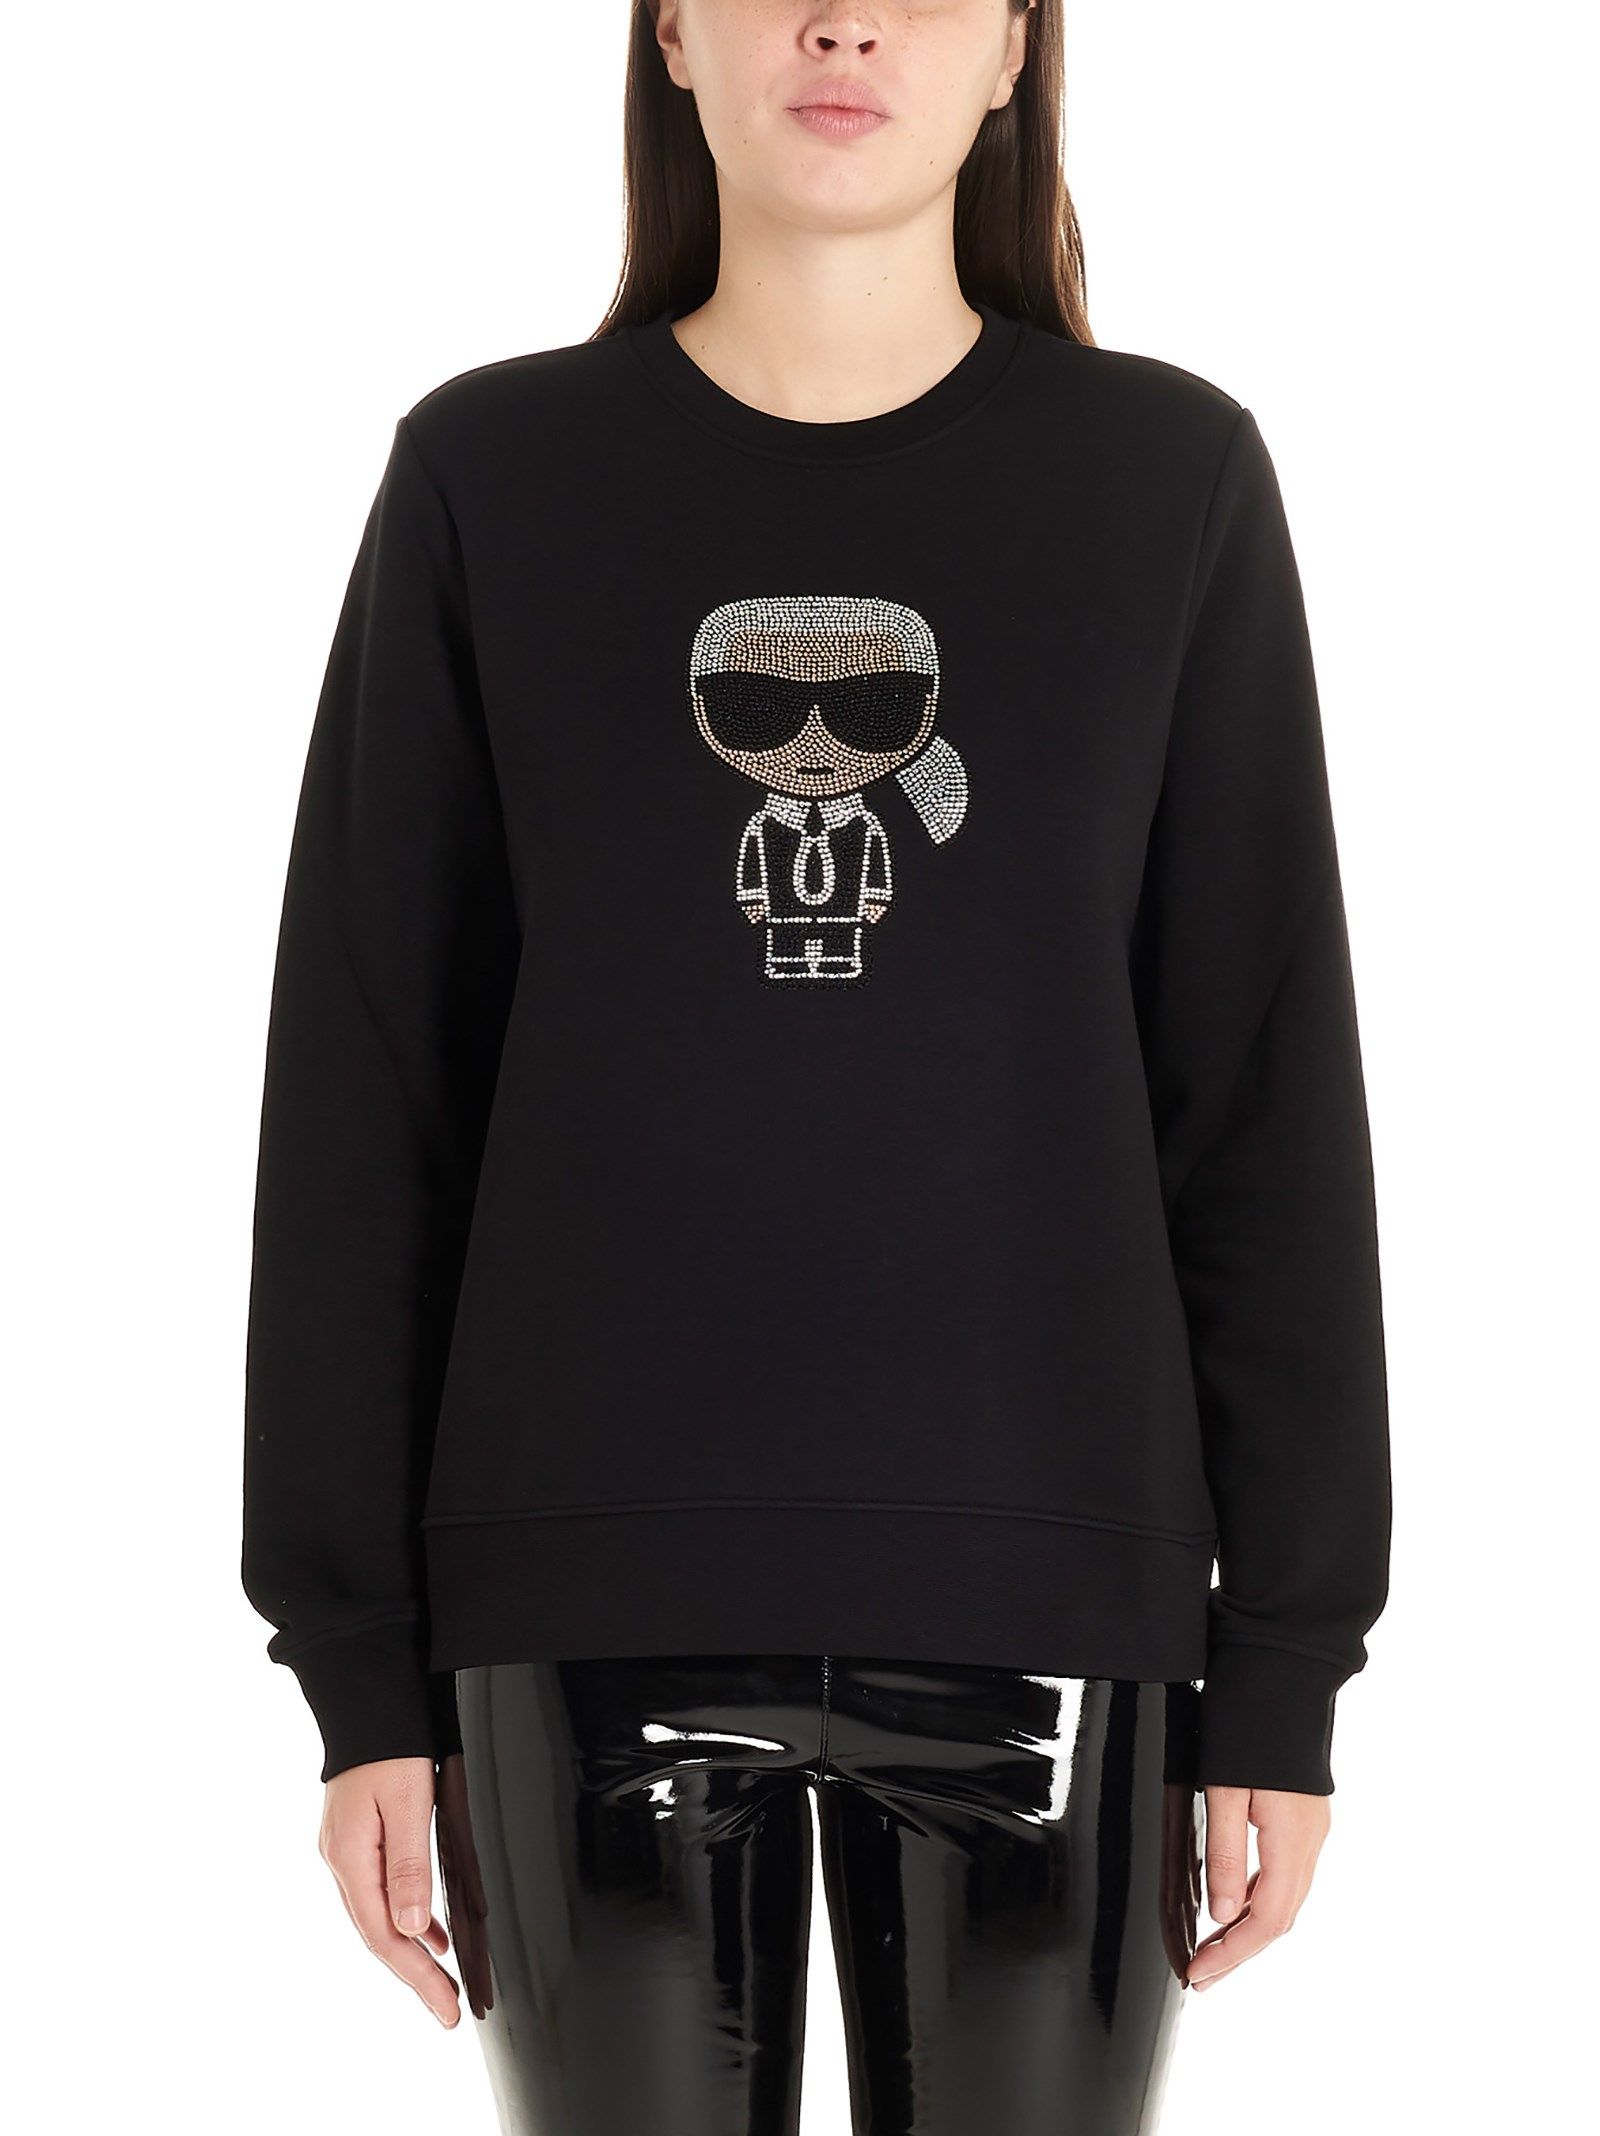 Karl Lagerfeld BLACK COTTON SWEATSHIRT